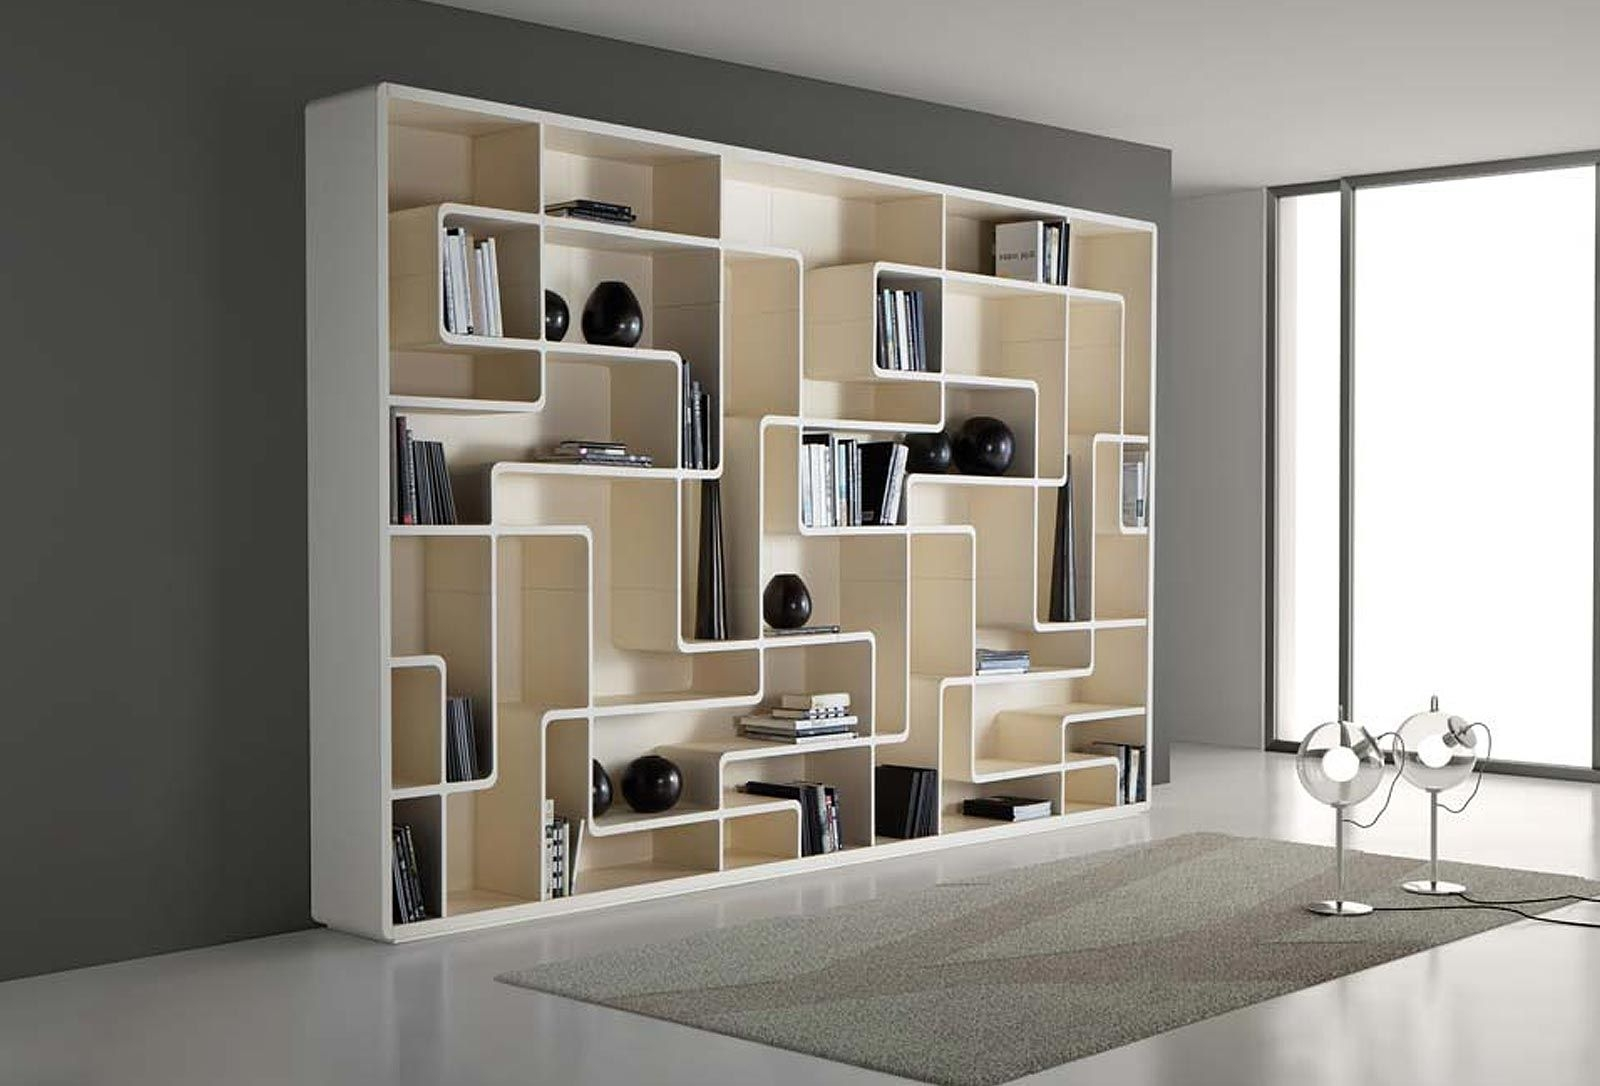 Astounding Wall Grey Wooden Bookcase Design On Modern Living Room Regarding Unique Bookcase Designs (View 12 of 15)